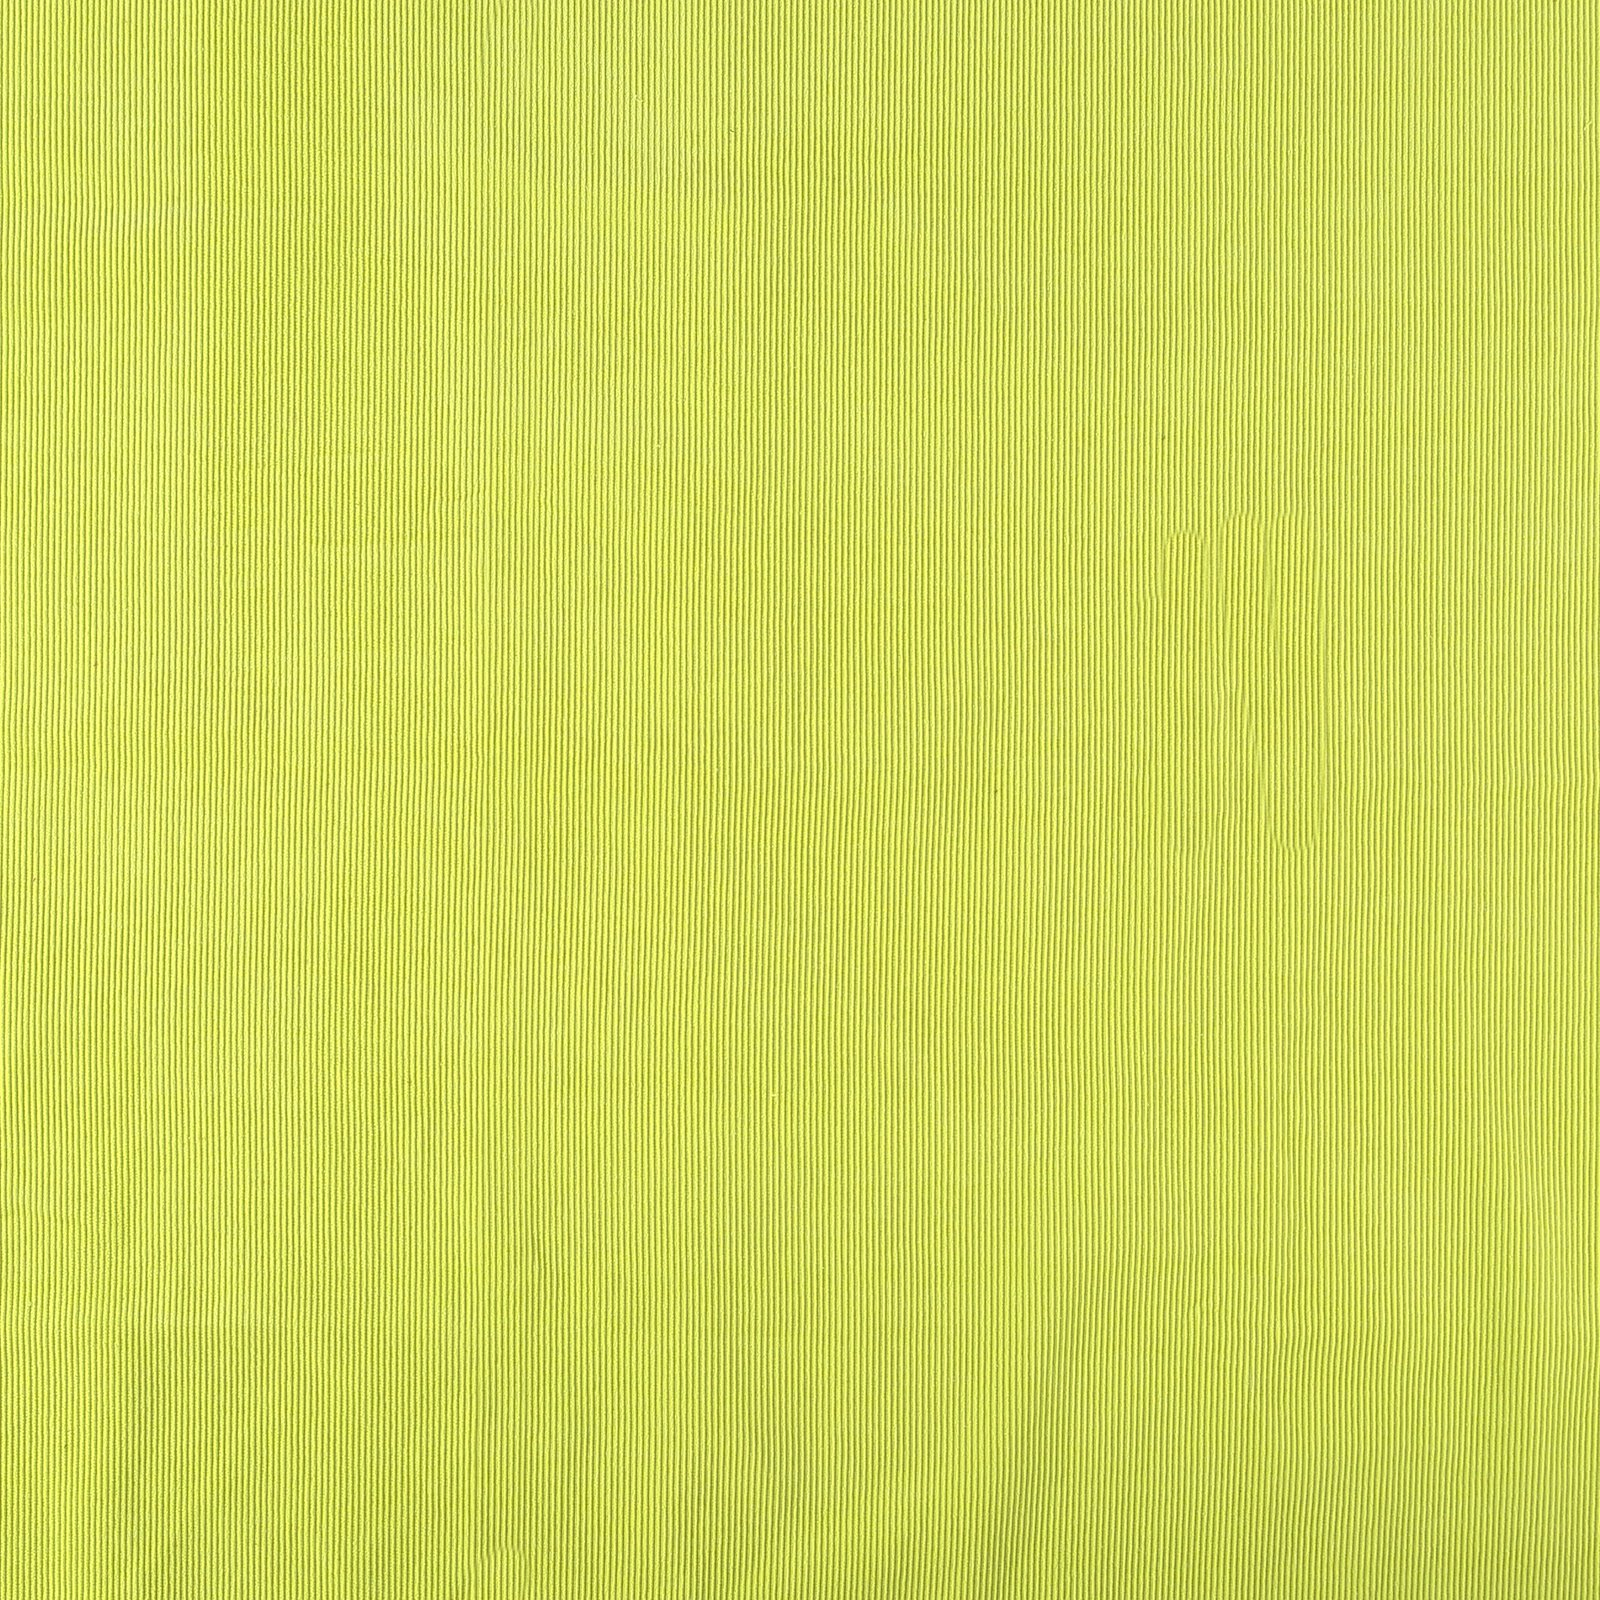 Corduroy 8 wales light lime 430822_pack_sp